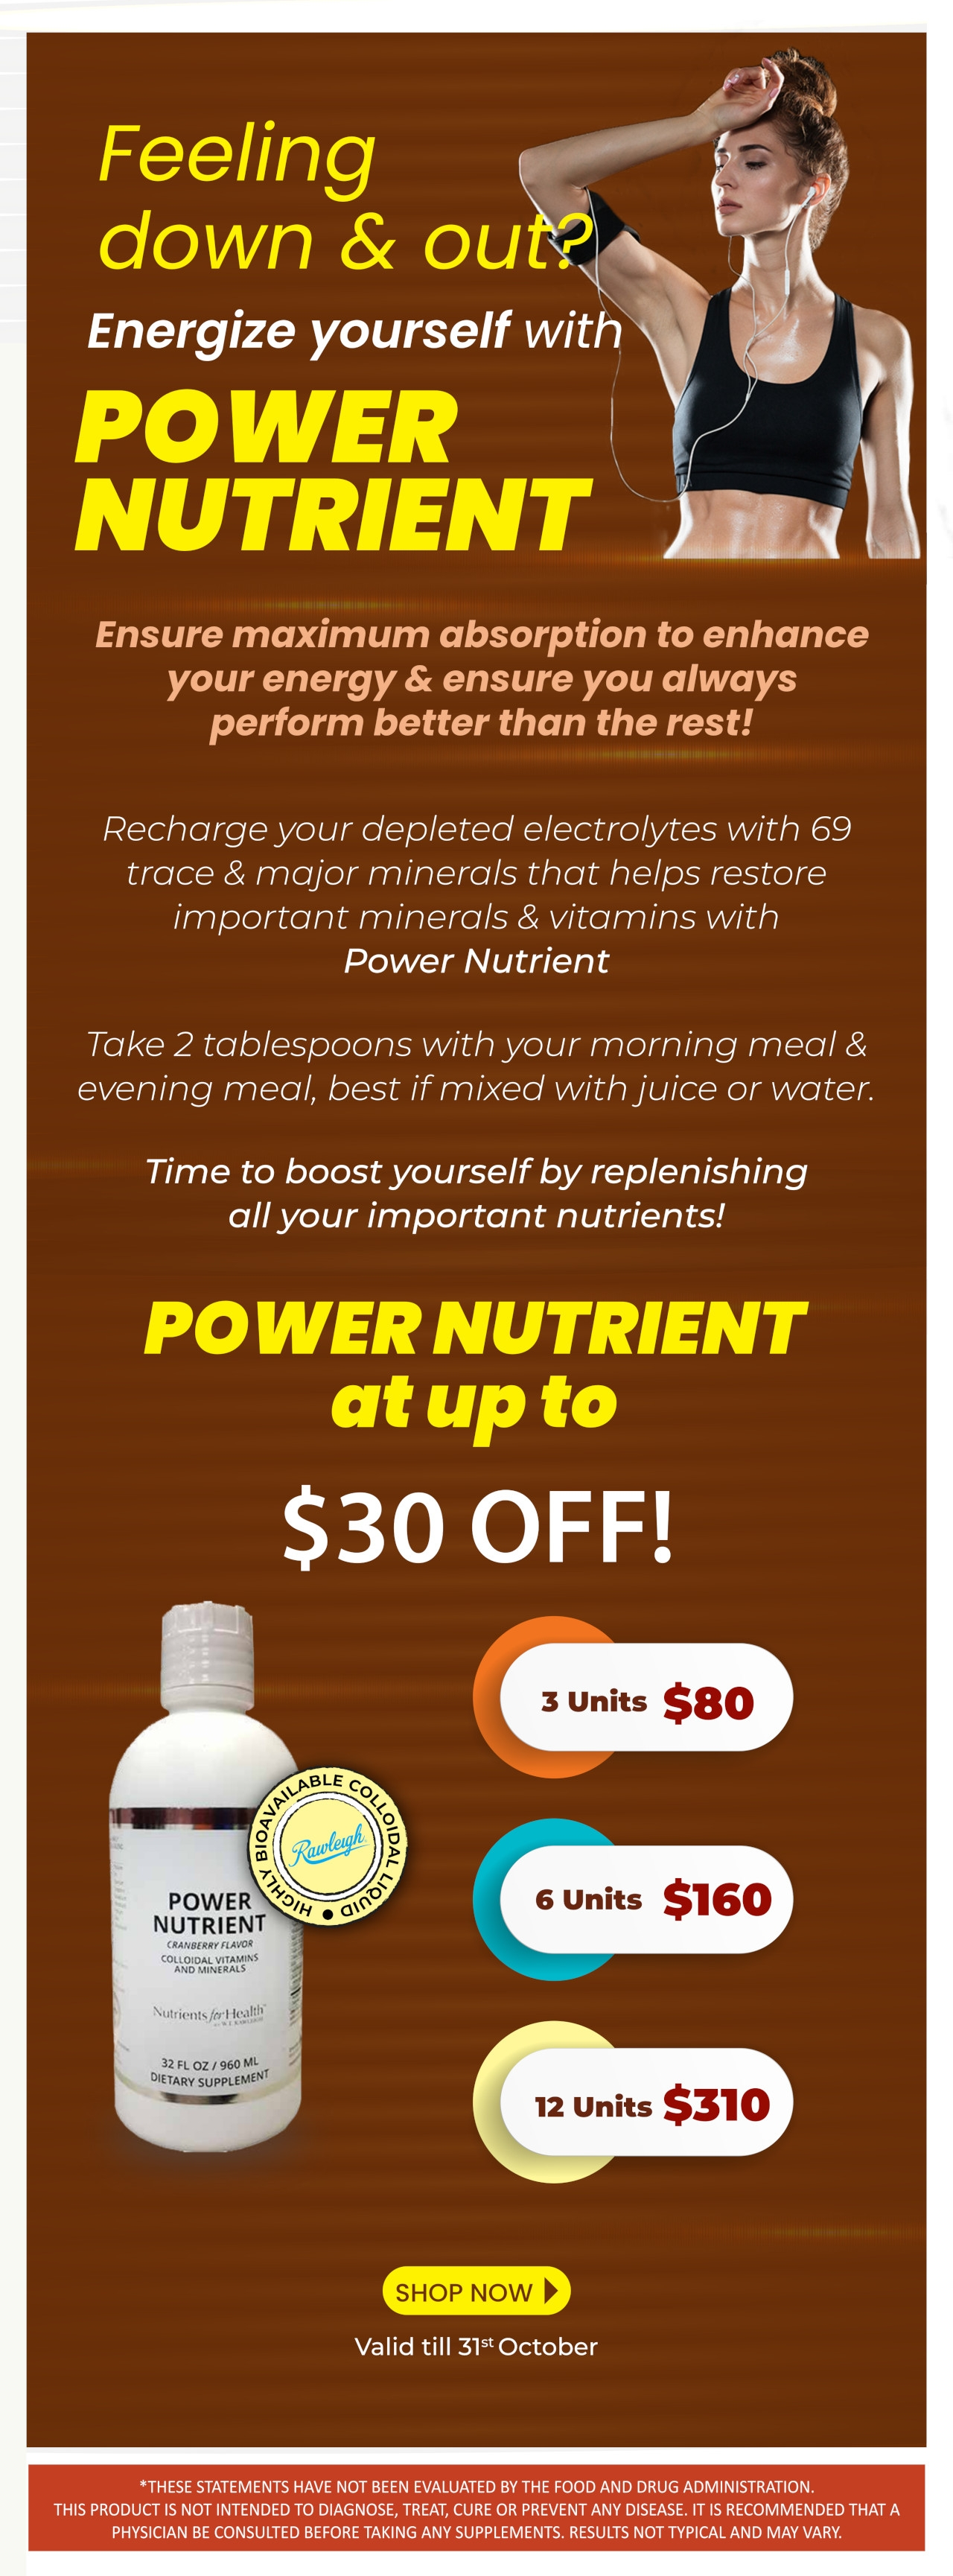 Special Offer on Power Nutrient!